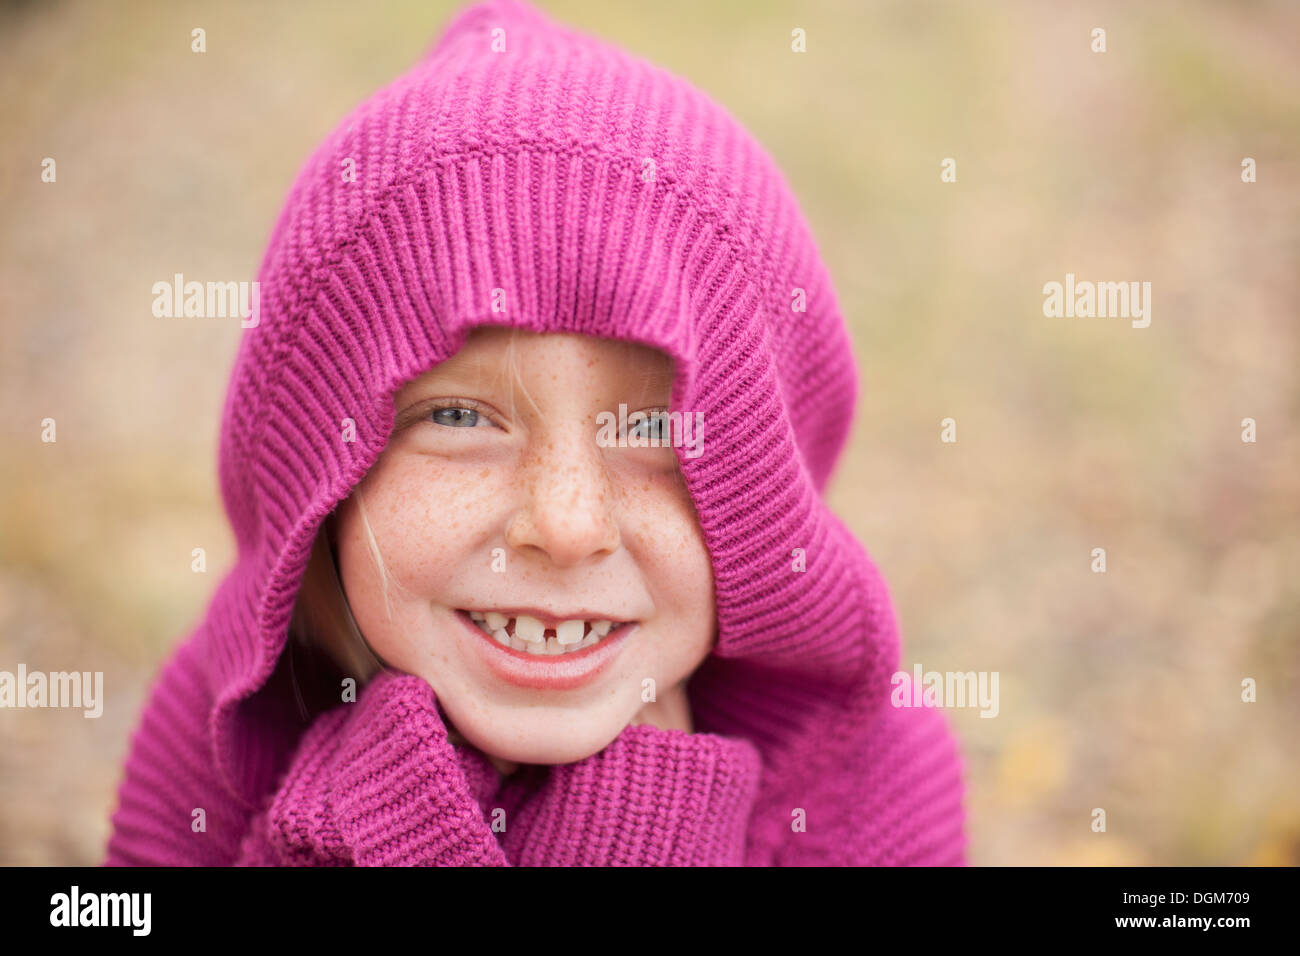 A girl in a magenta hooded sweater, with the hood covering her head Stock Photo